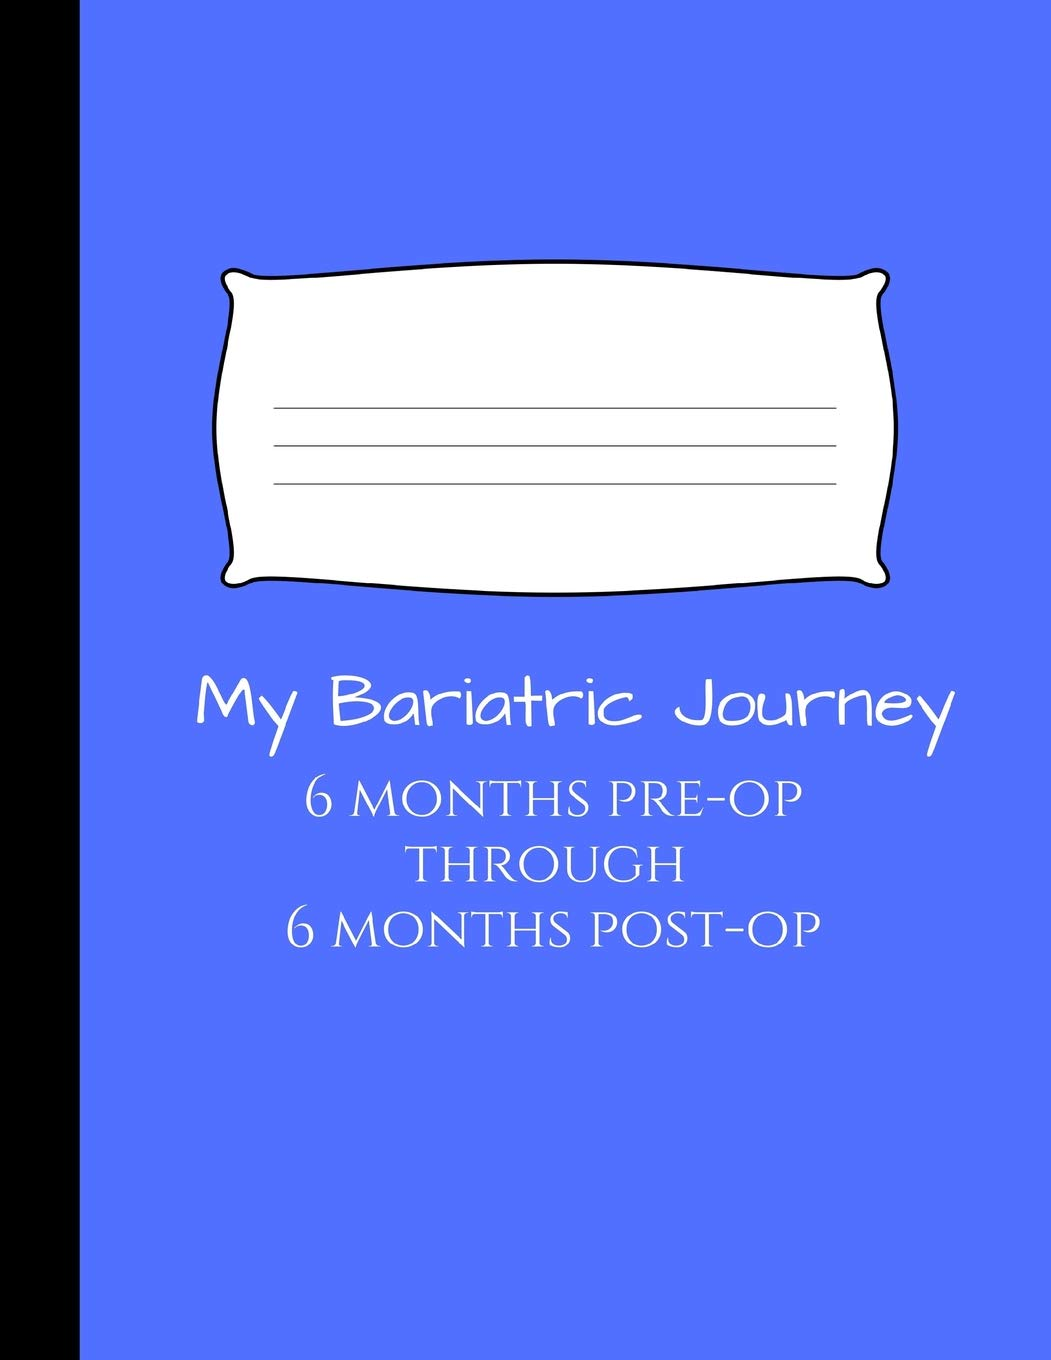 My Bariatric Journey For Tracking Your Surgery From 6 Months Pre Op